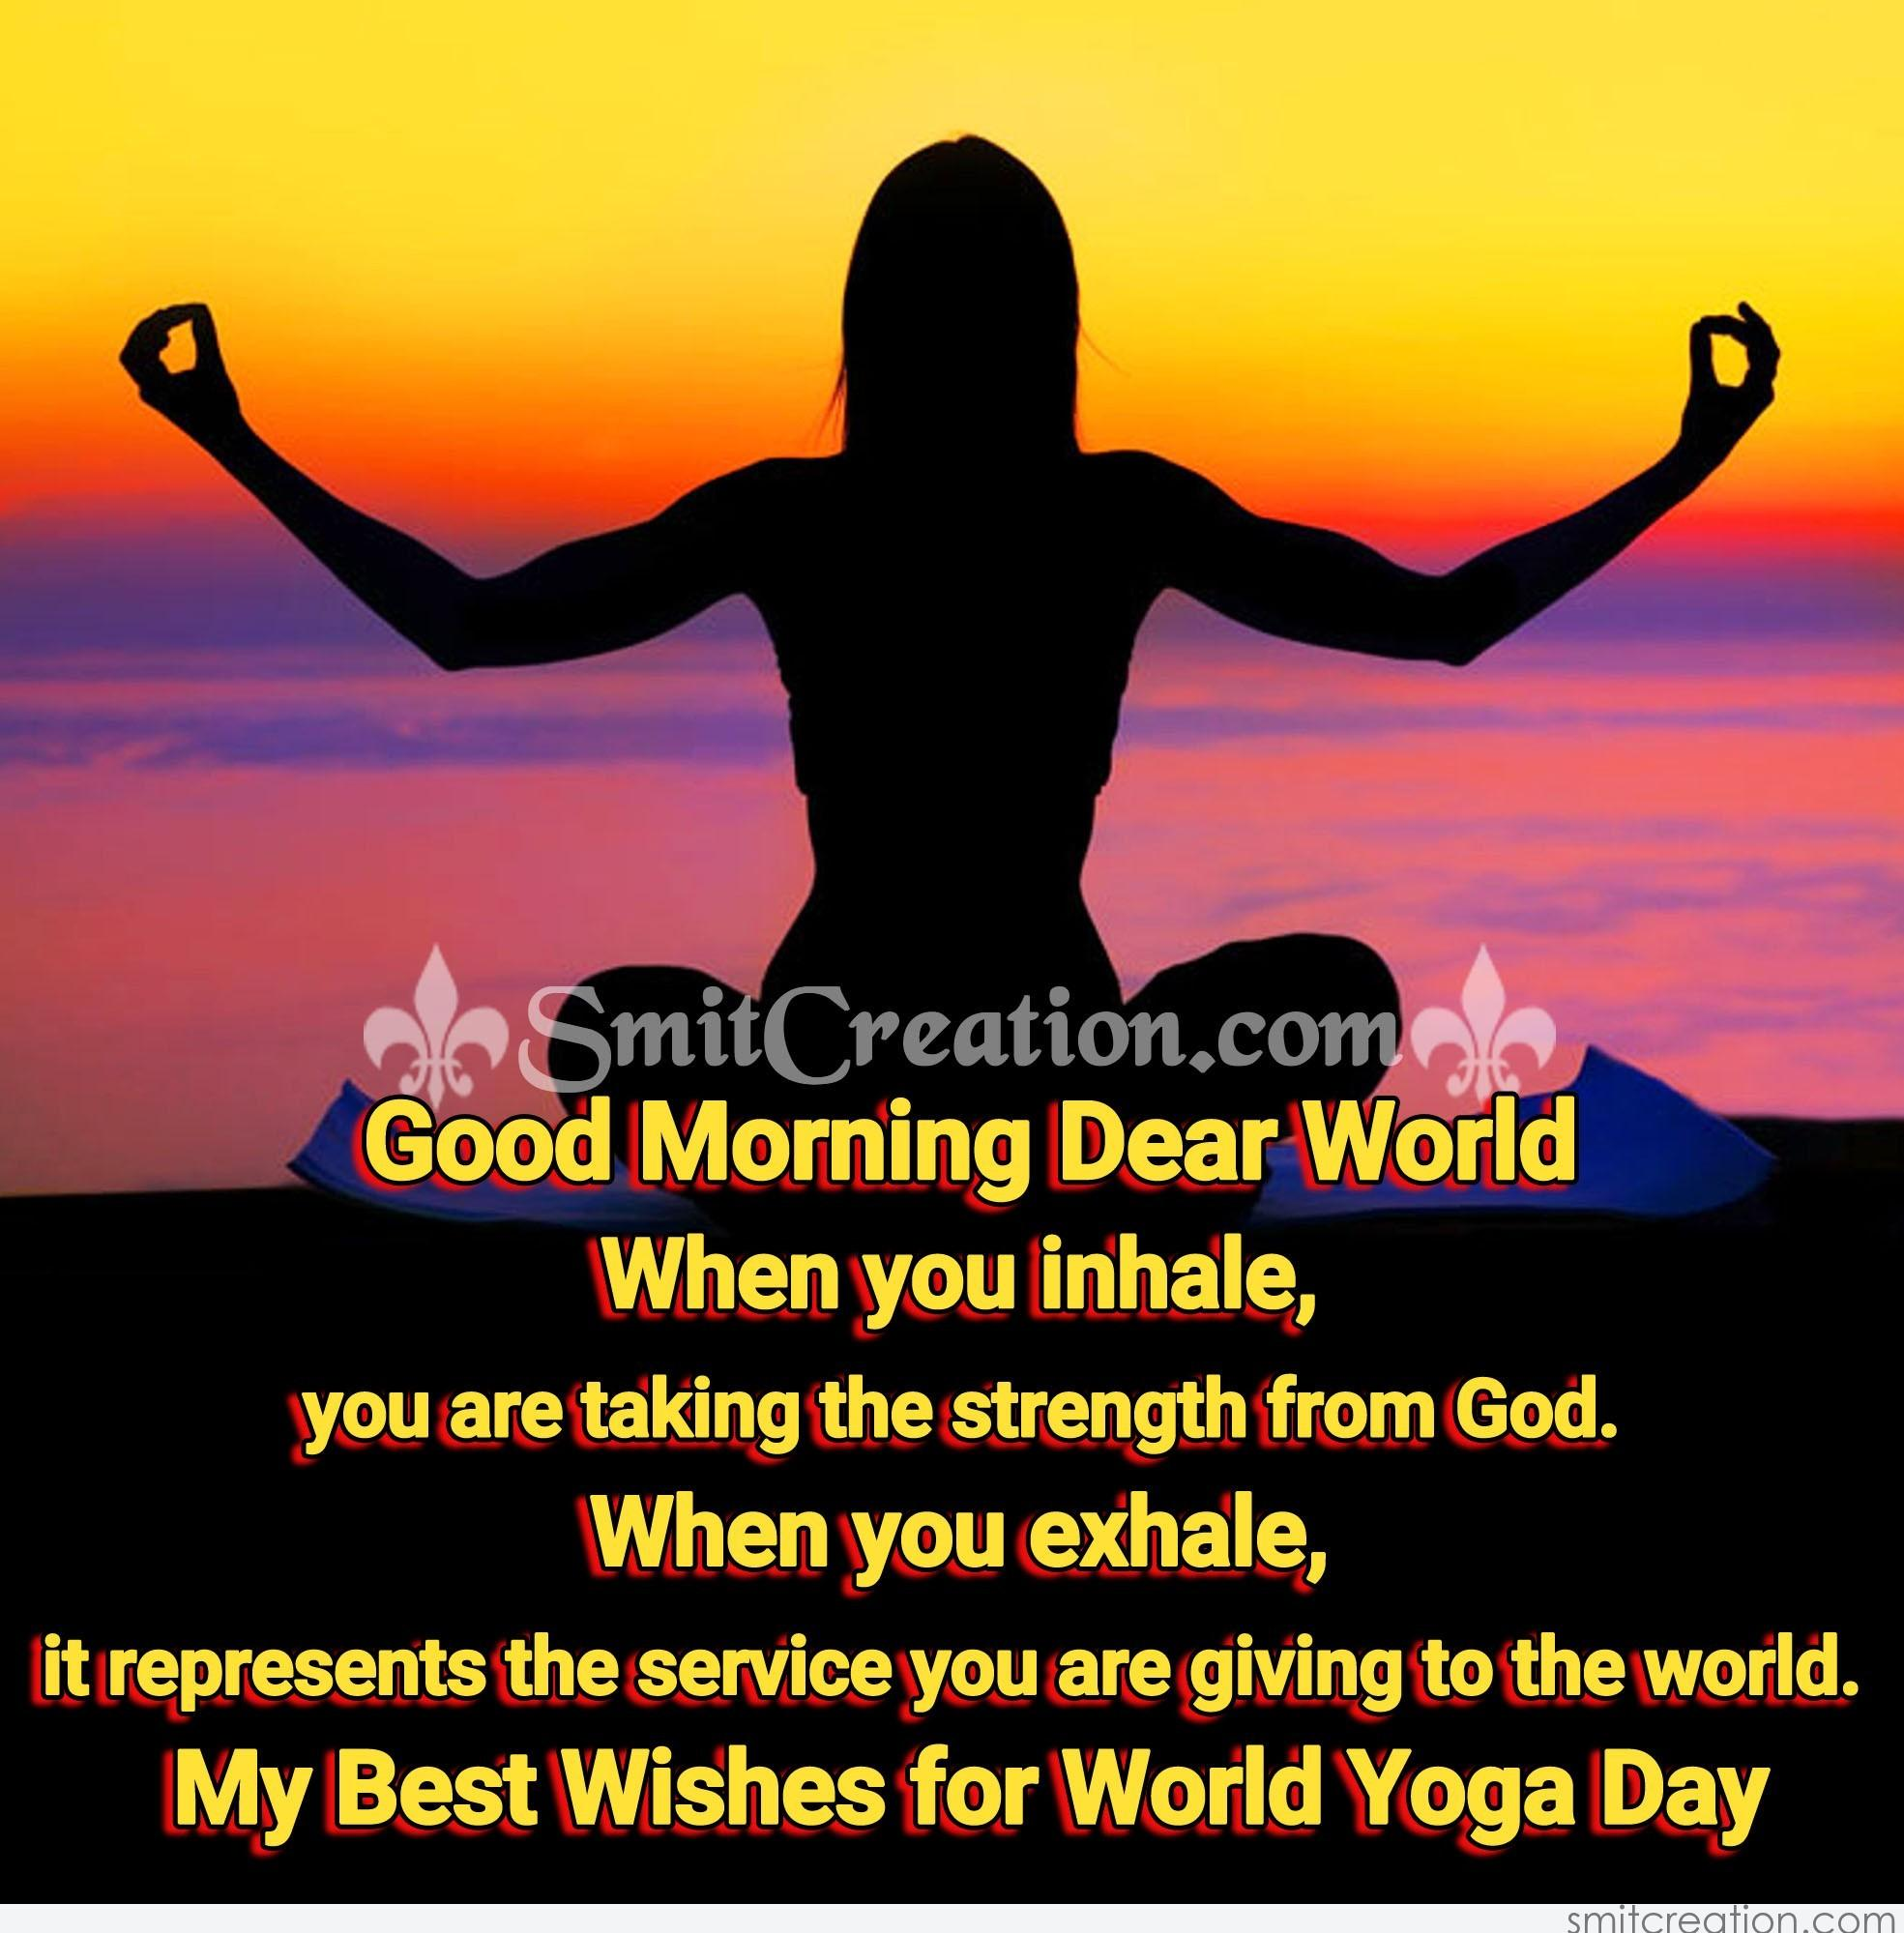 Good Morning Dear World Best Wishes For World Yoga Day